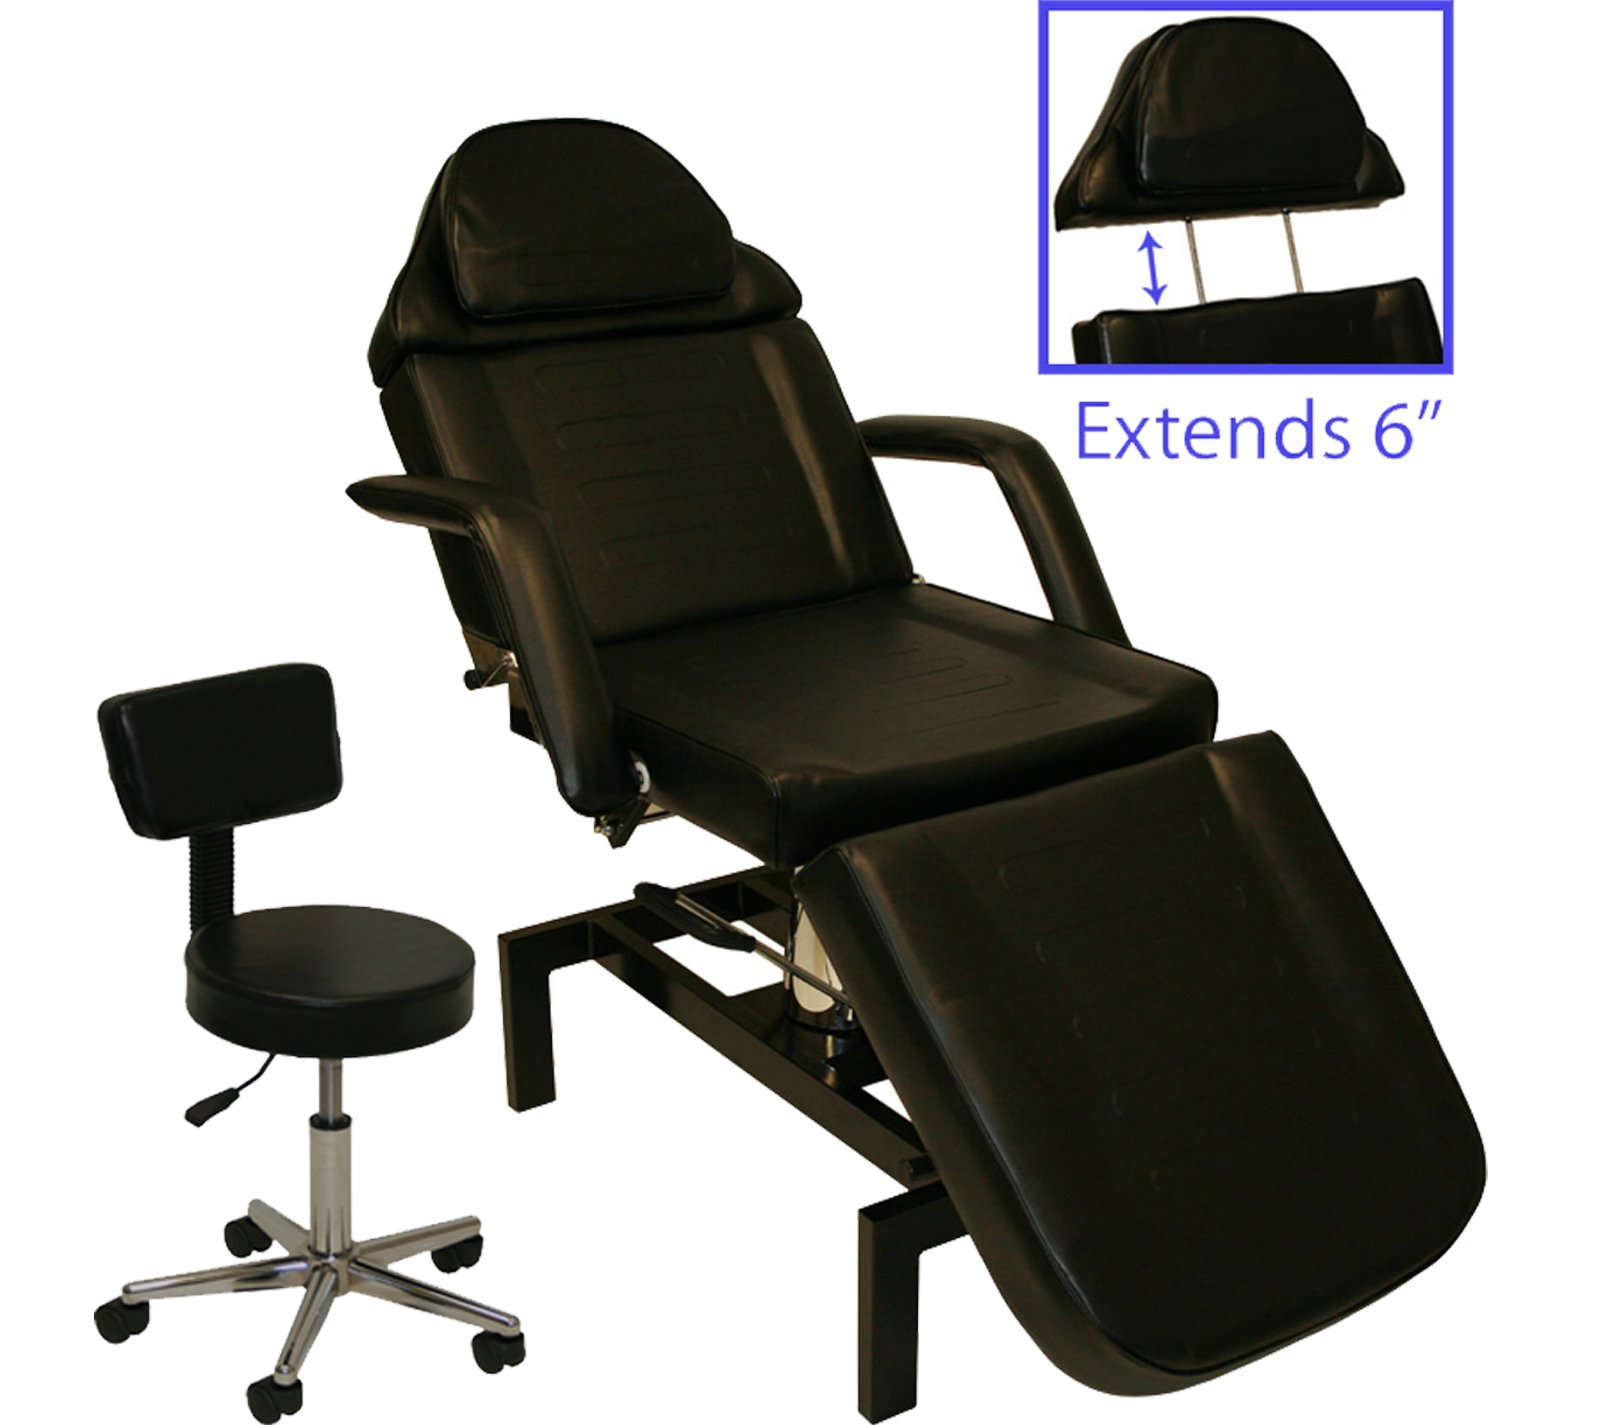 LCL Beauty Hydraulic Lift Adjustable Facial & Tattoo Bed with FREE Matching Technician Stool